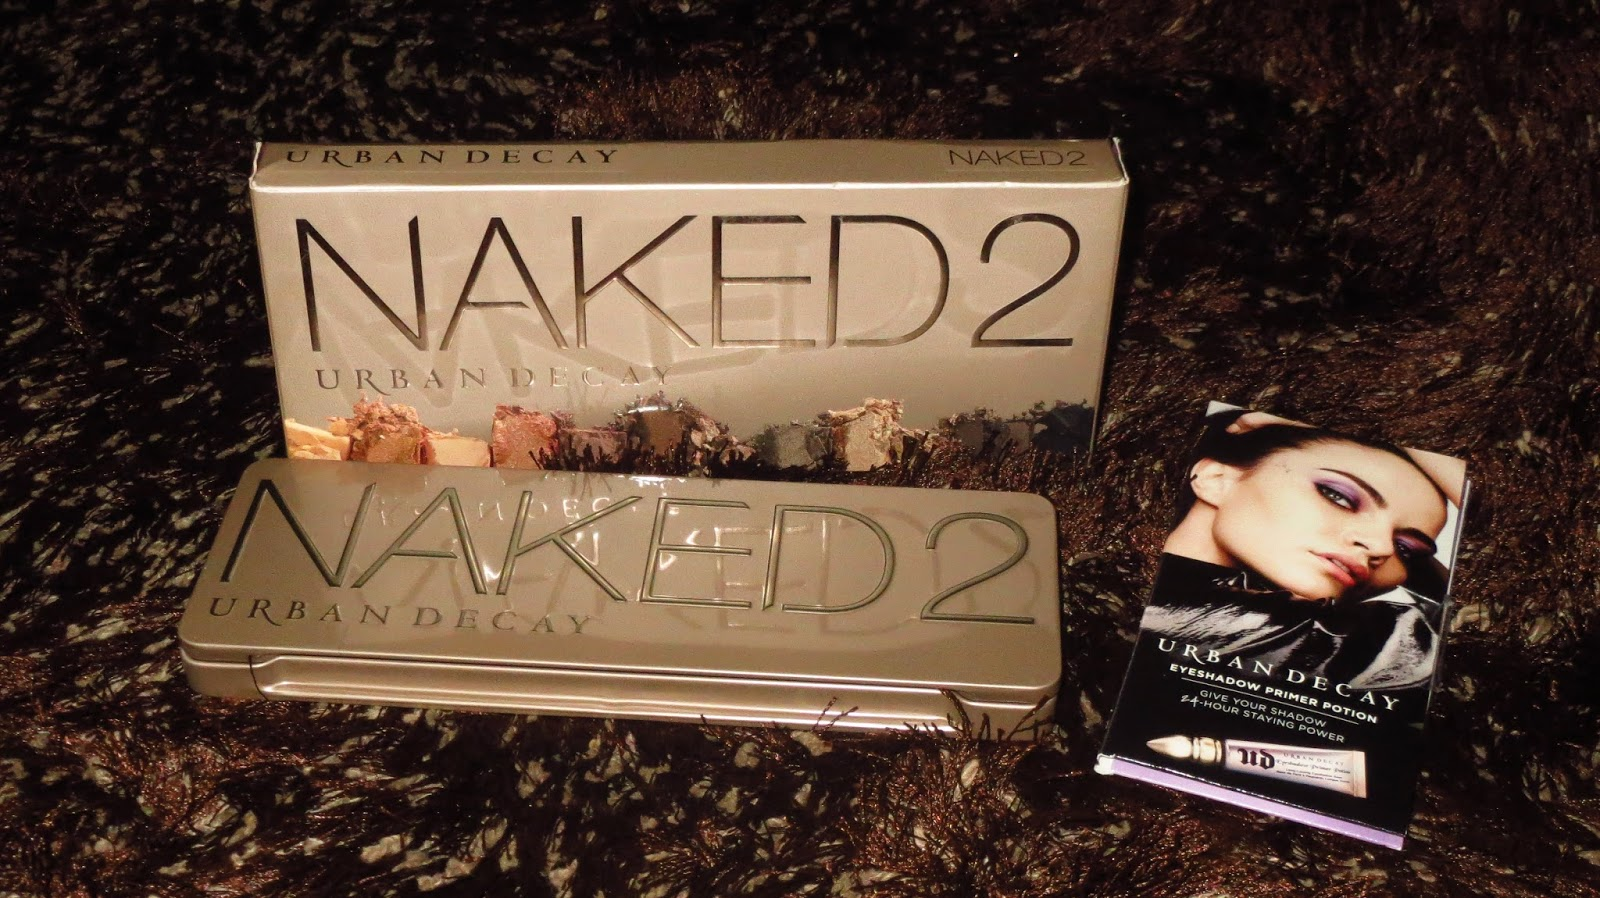 Urban Decay Naked 2 and Urban Decay Eyeshadow Primer Potion India, Sephora